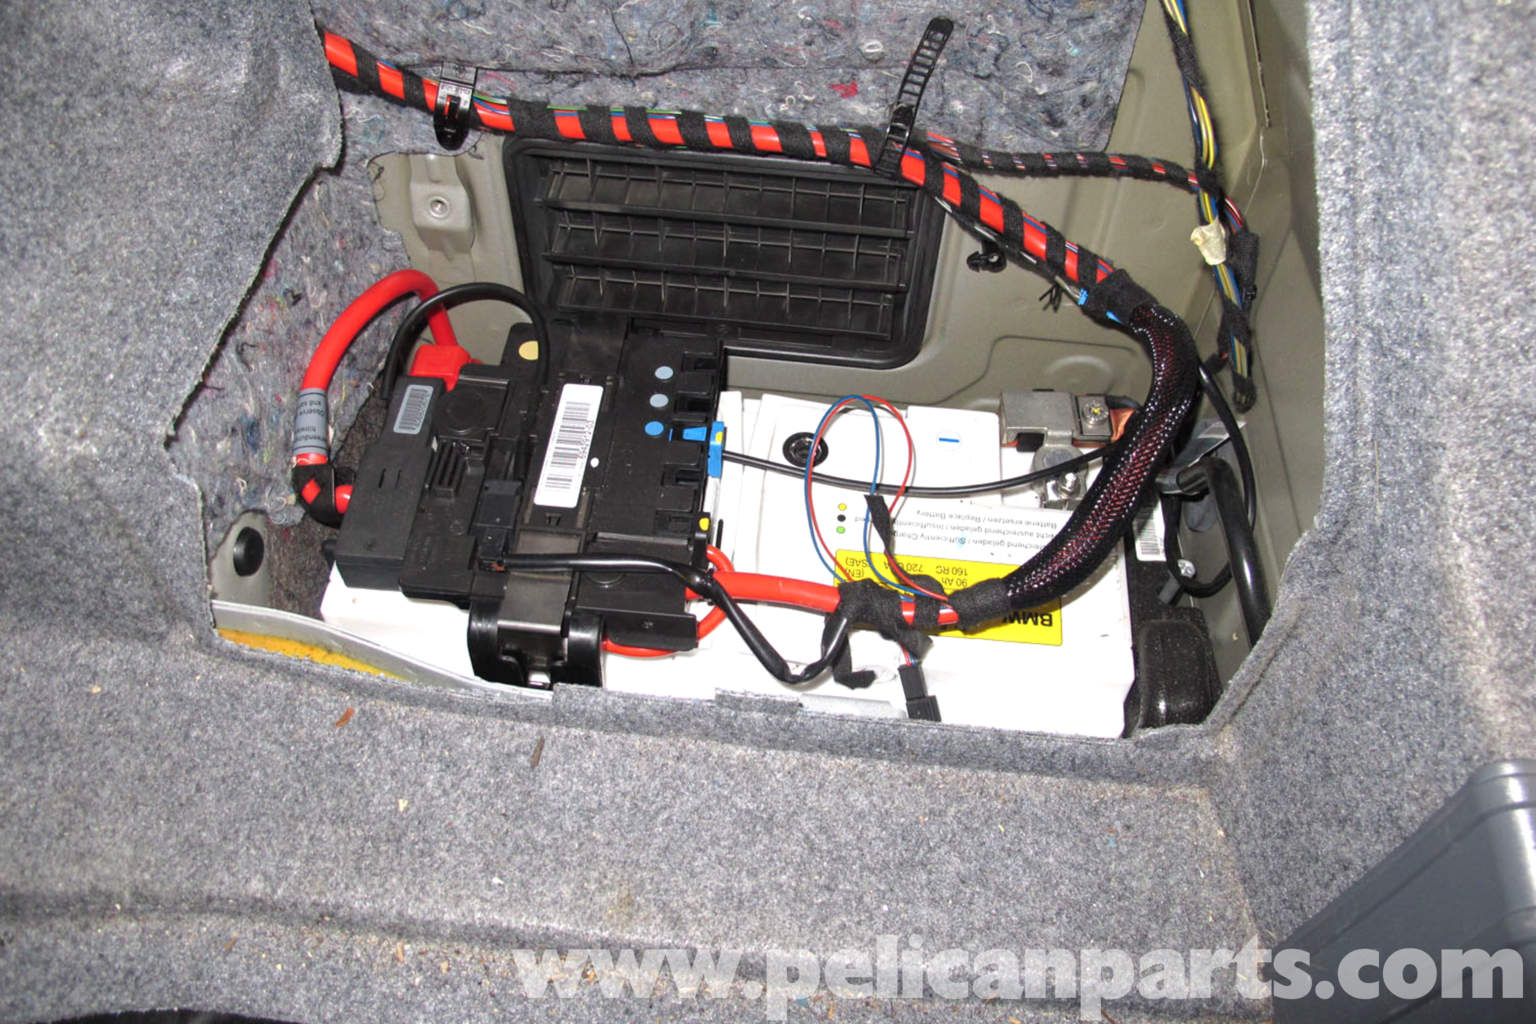 pic01 e90 m3 fuse box e39 fuse box wiring diagram ~ odicis e90 m3 fuse box location at mr168.co